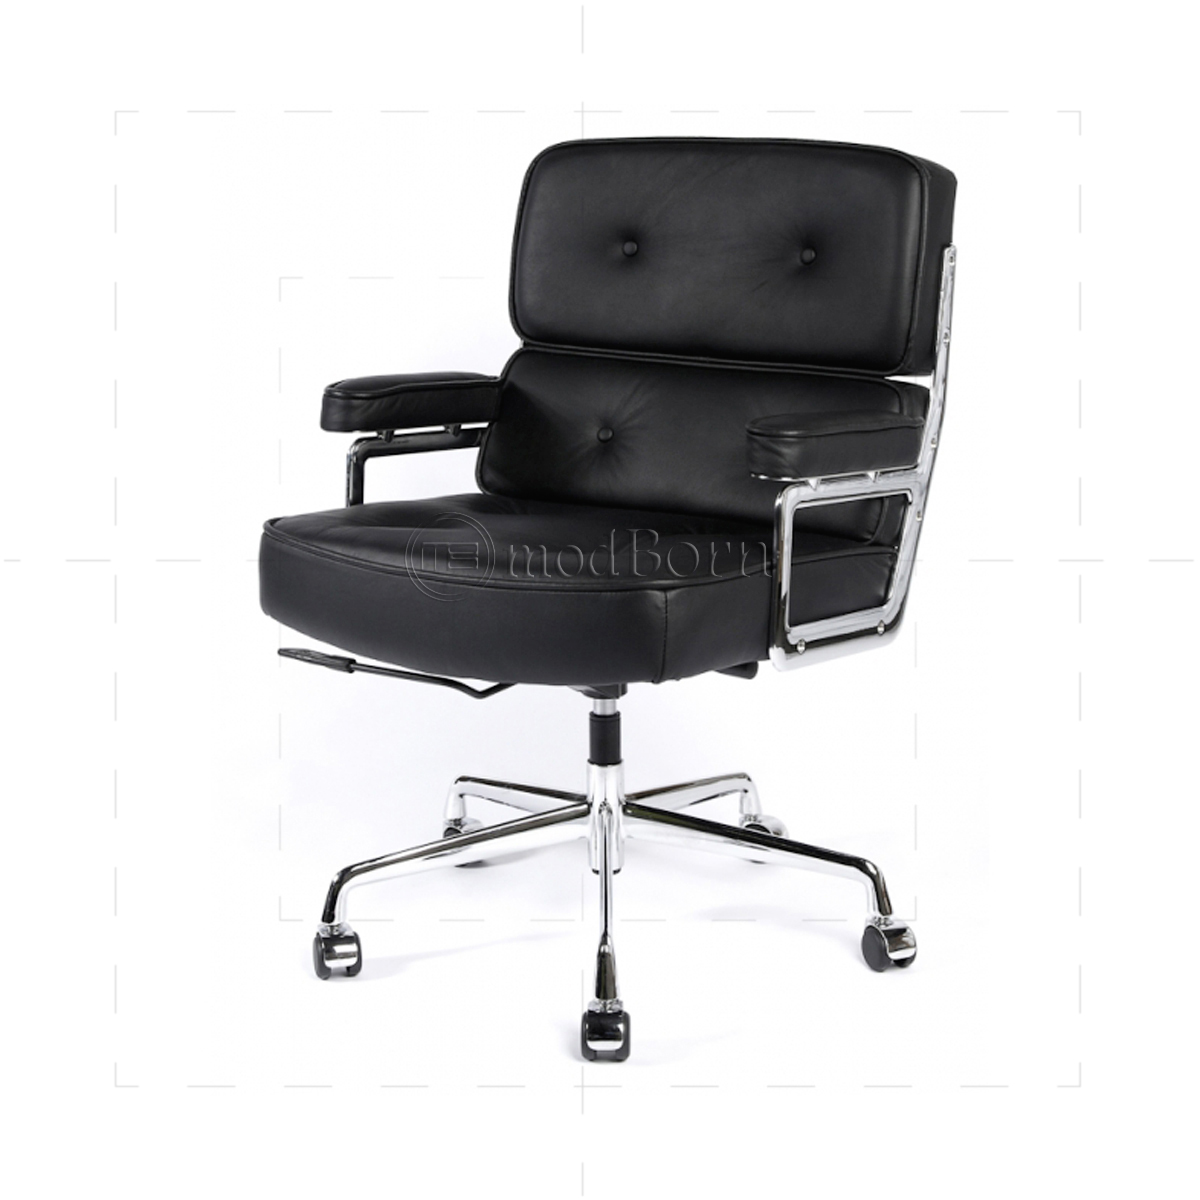 Ea104 eames style office lobby black leather executive for Eames chair replica deutschland